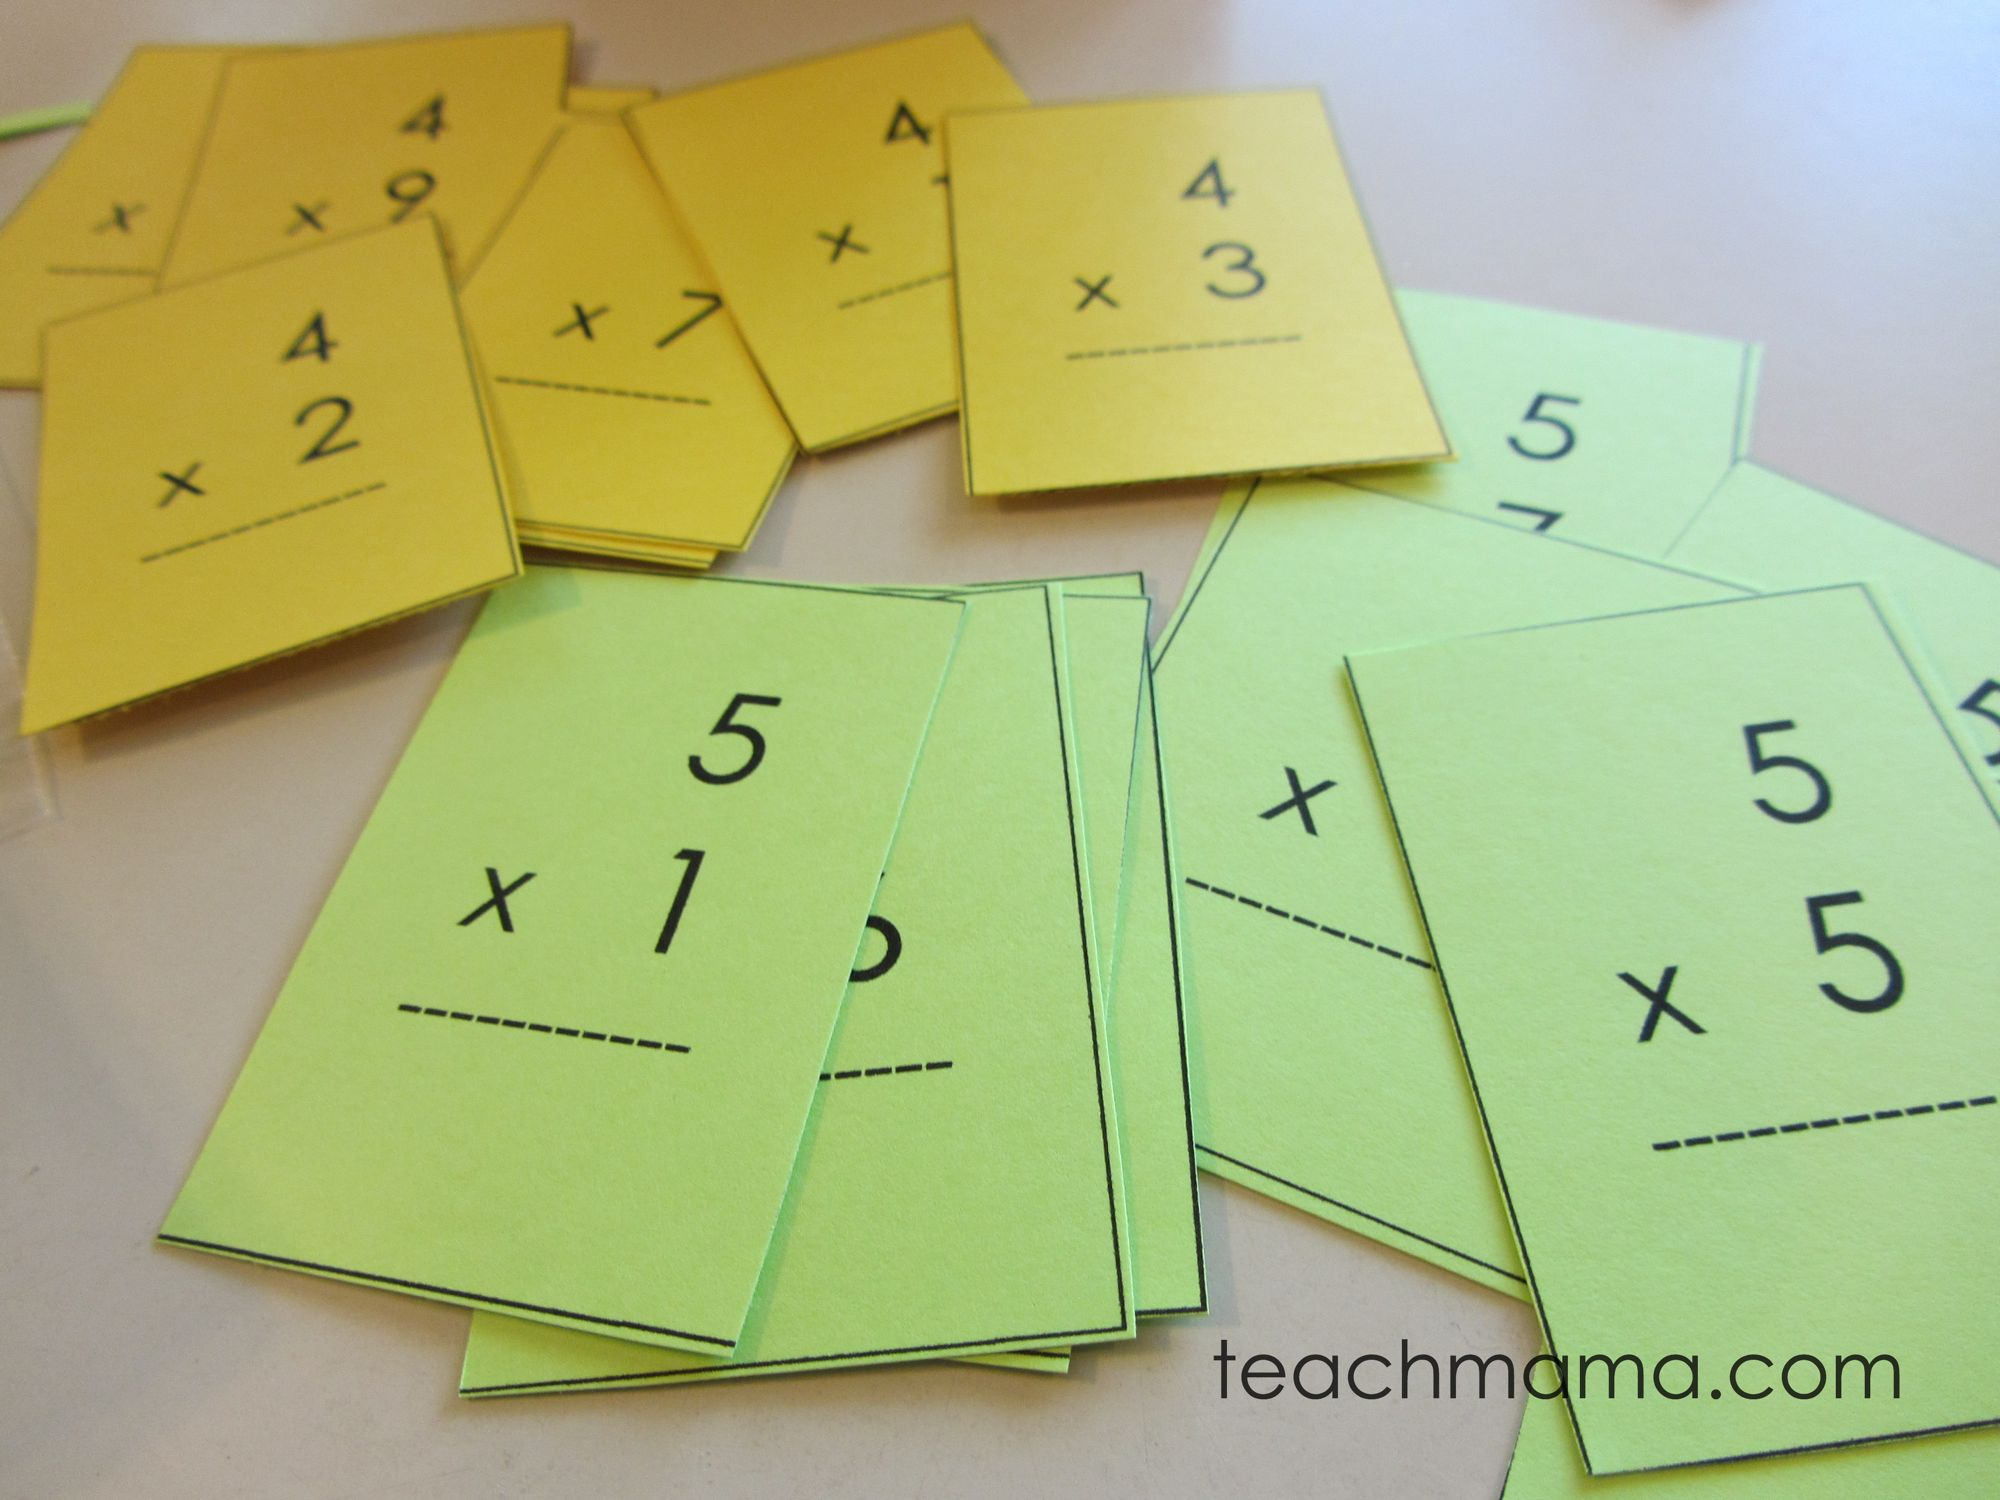 It's just a picture of Stupendous Printable Multiplication Cards